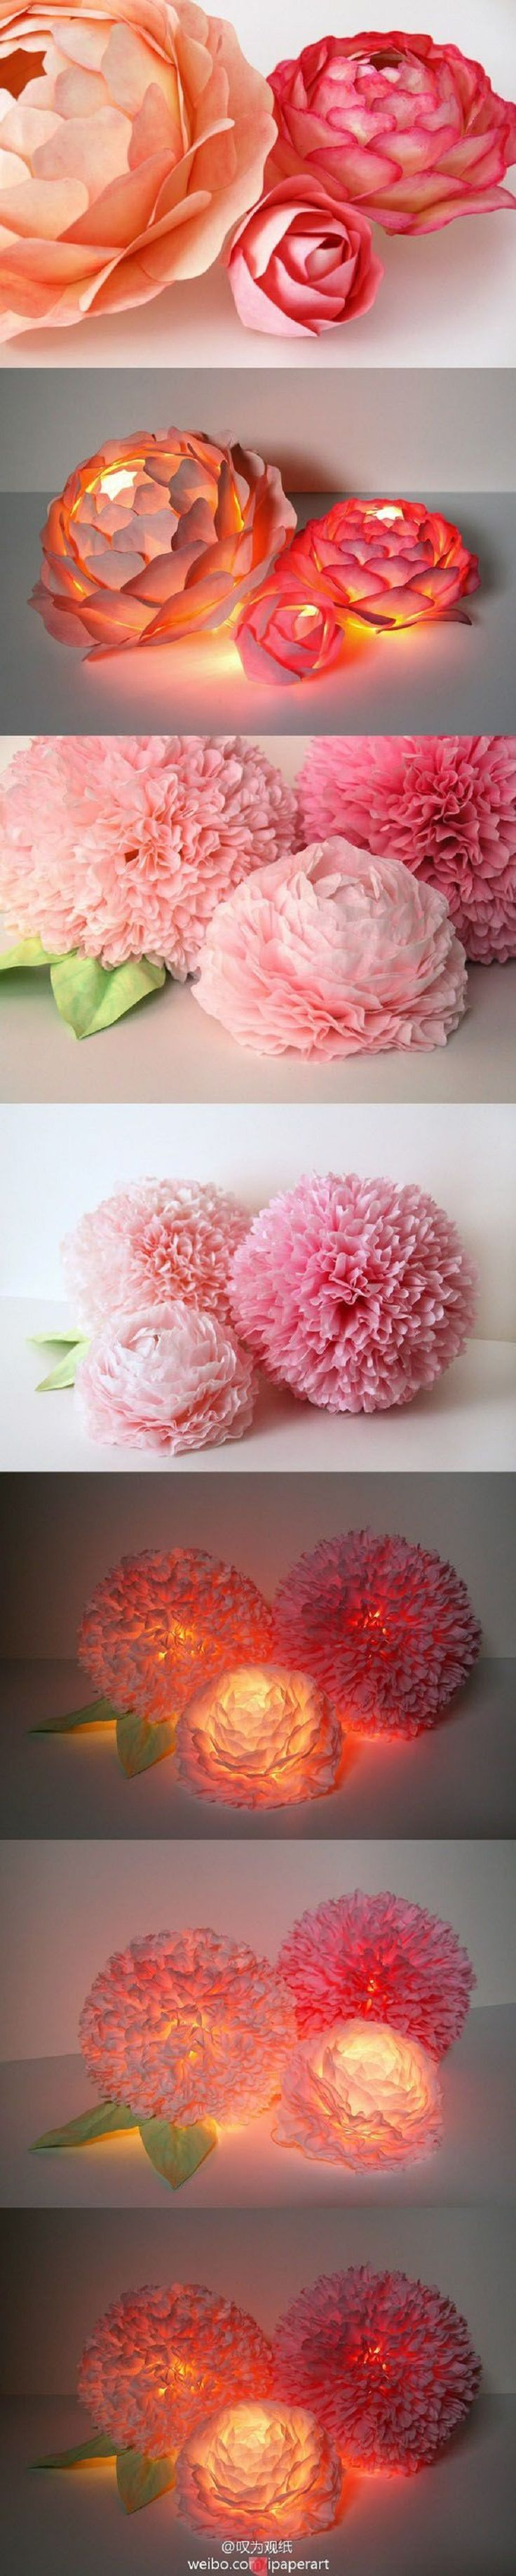 Paper Flower Centerpiece with LED Lighting - 17 Blossoming DIY Spring Decorating Tutorials   GleamItUp